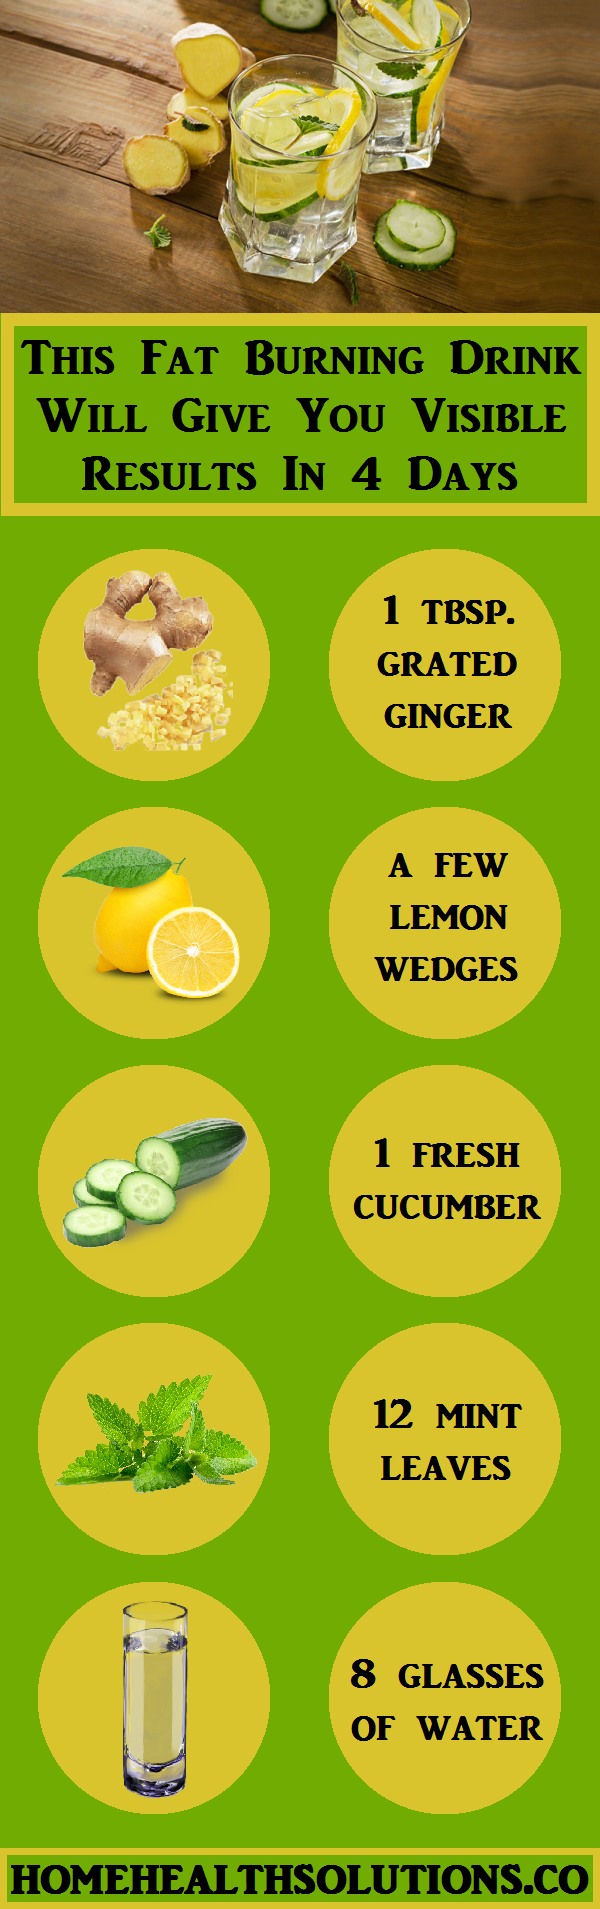 21 DAYS LOSE WEIGHT http://weightlosssucesss.pw/the-5-commandments-of-smart-dieting/